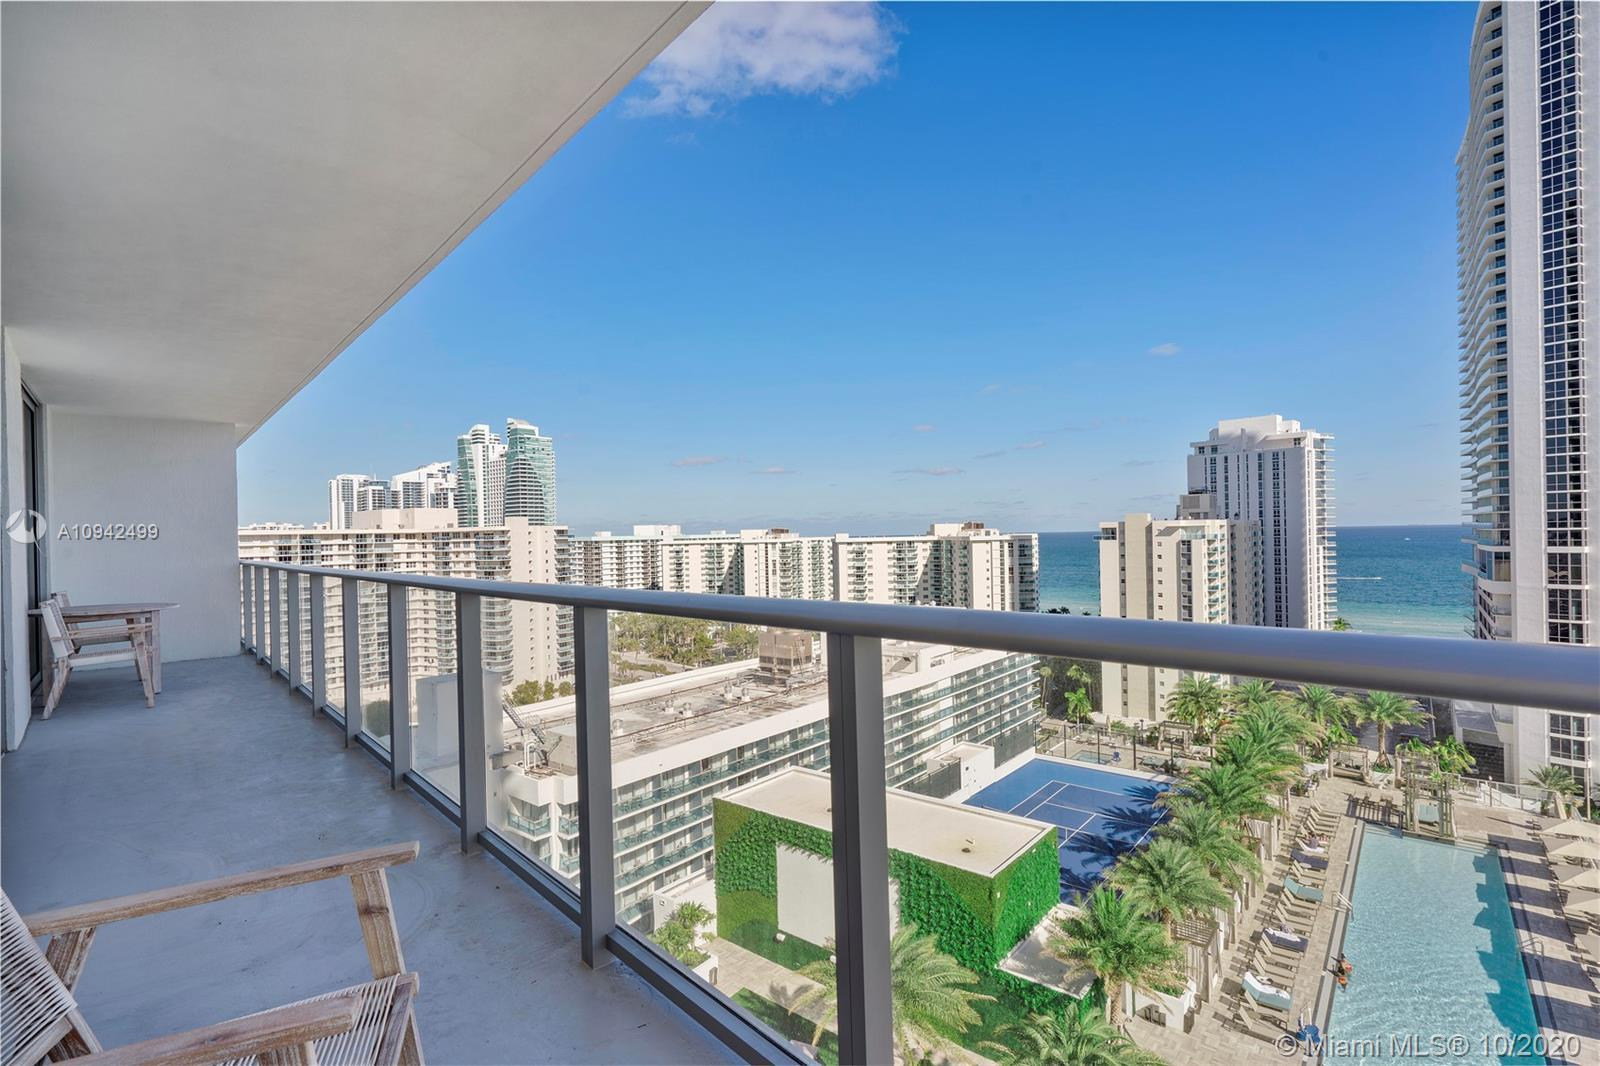 Best view from this brand new condo/hotel,  furnished with ocean views and pool. 2  bedrooms, with E